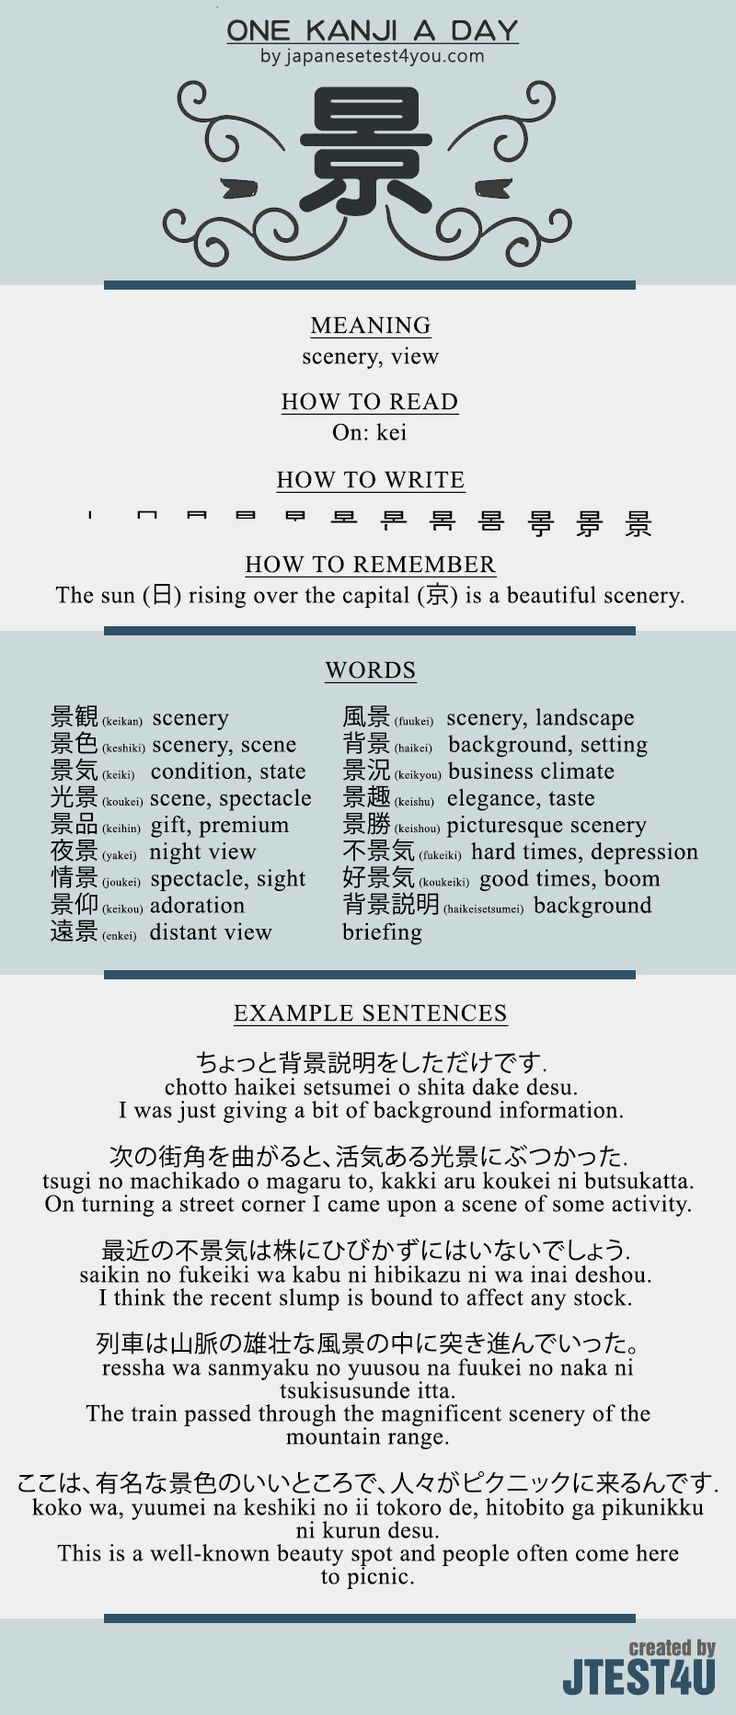 Learn one Kanji a day with infographic 景 kei